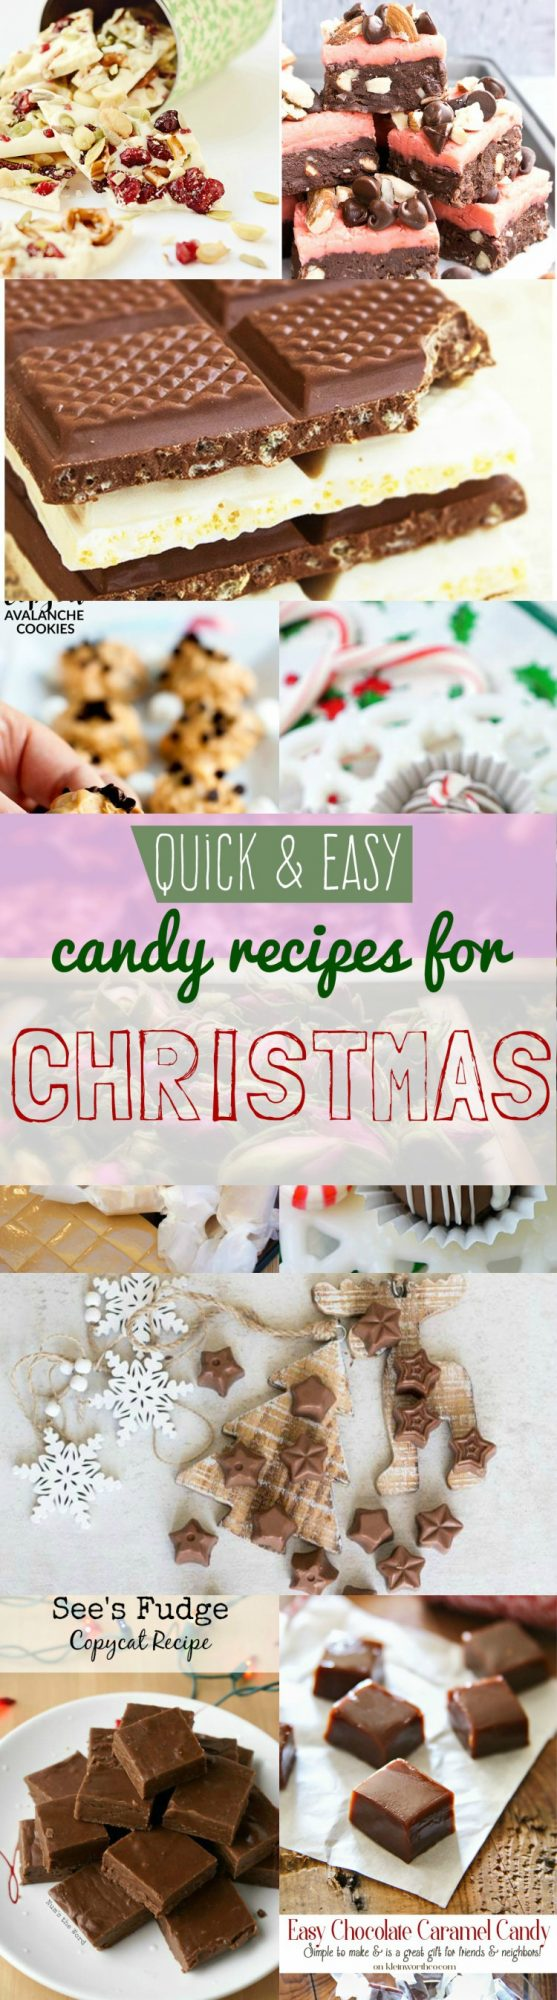 Quick And Easy Christmas Candy Recipes